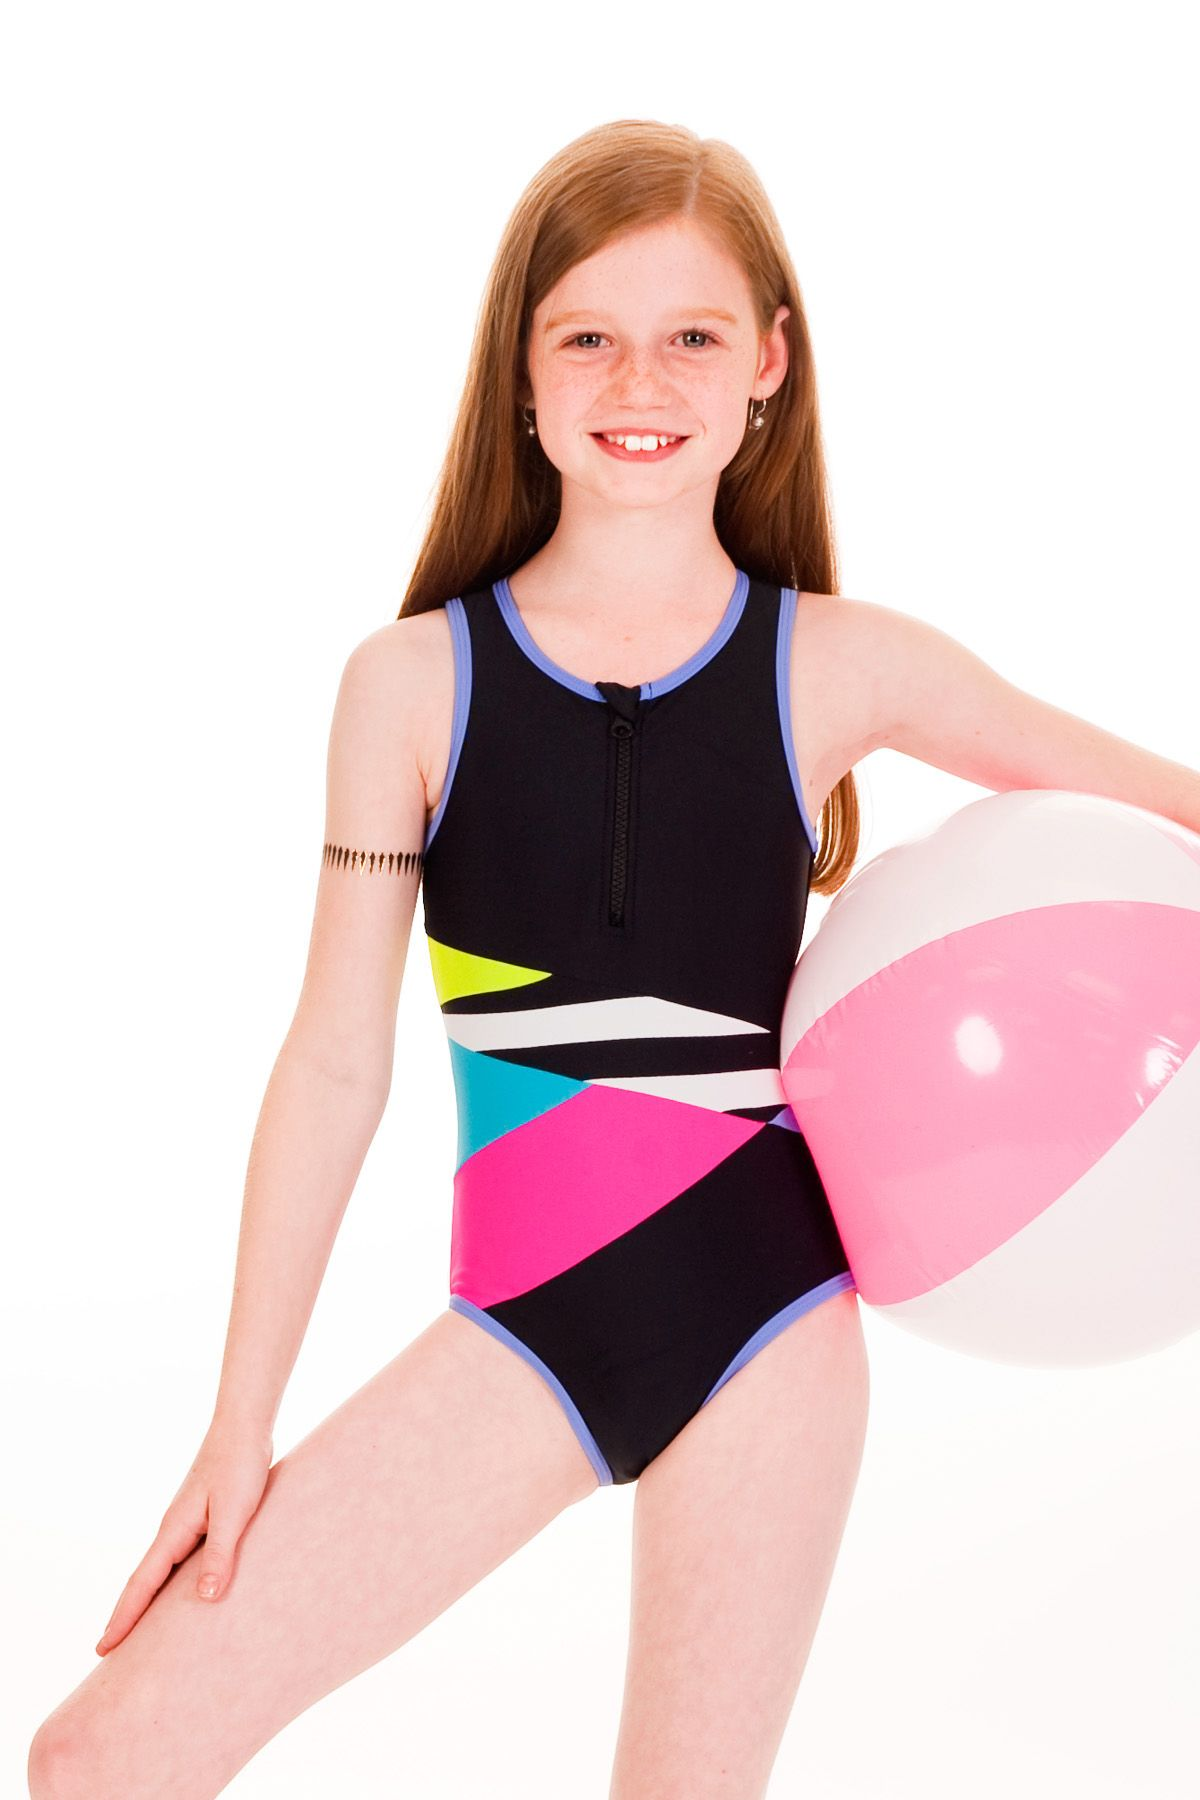 Limeapple girls swimwear | Preteen Girls Swimsuits fun and colorful ...